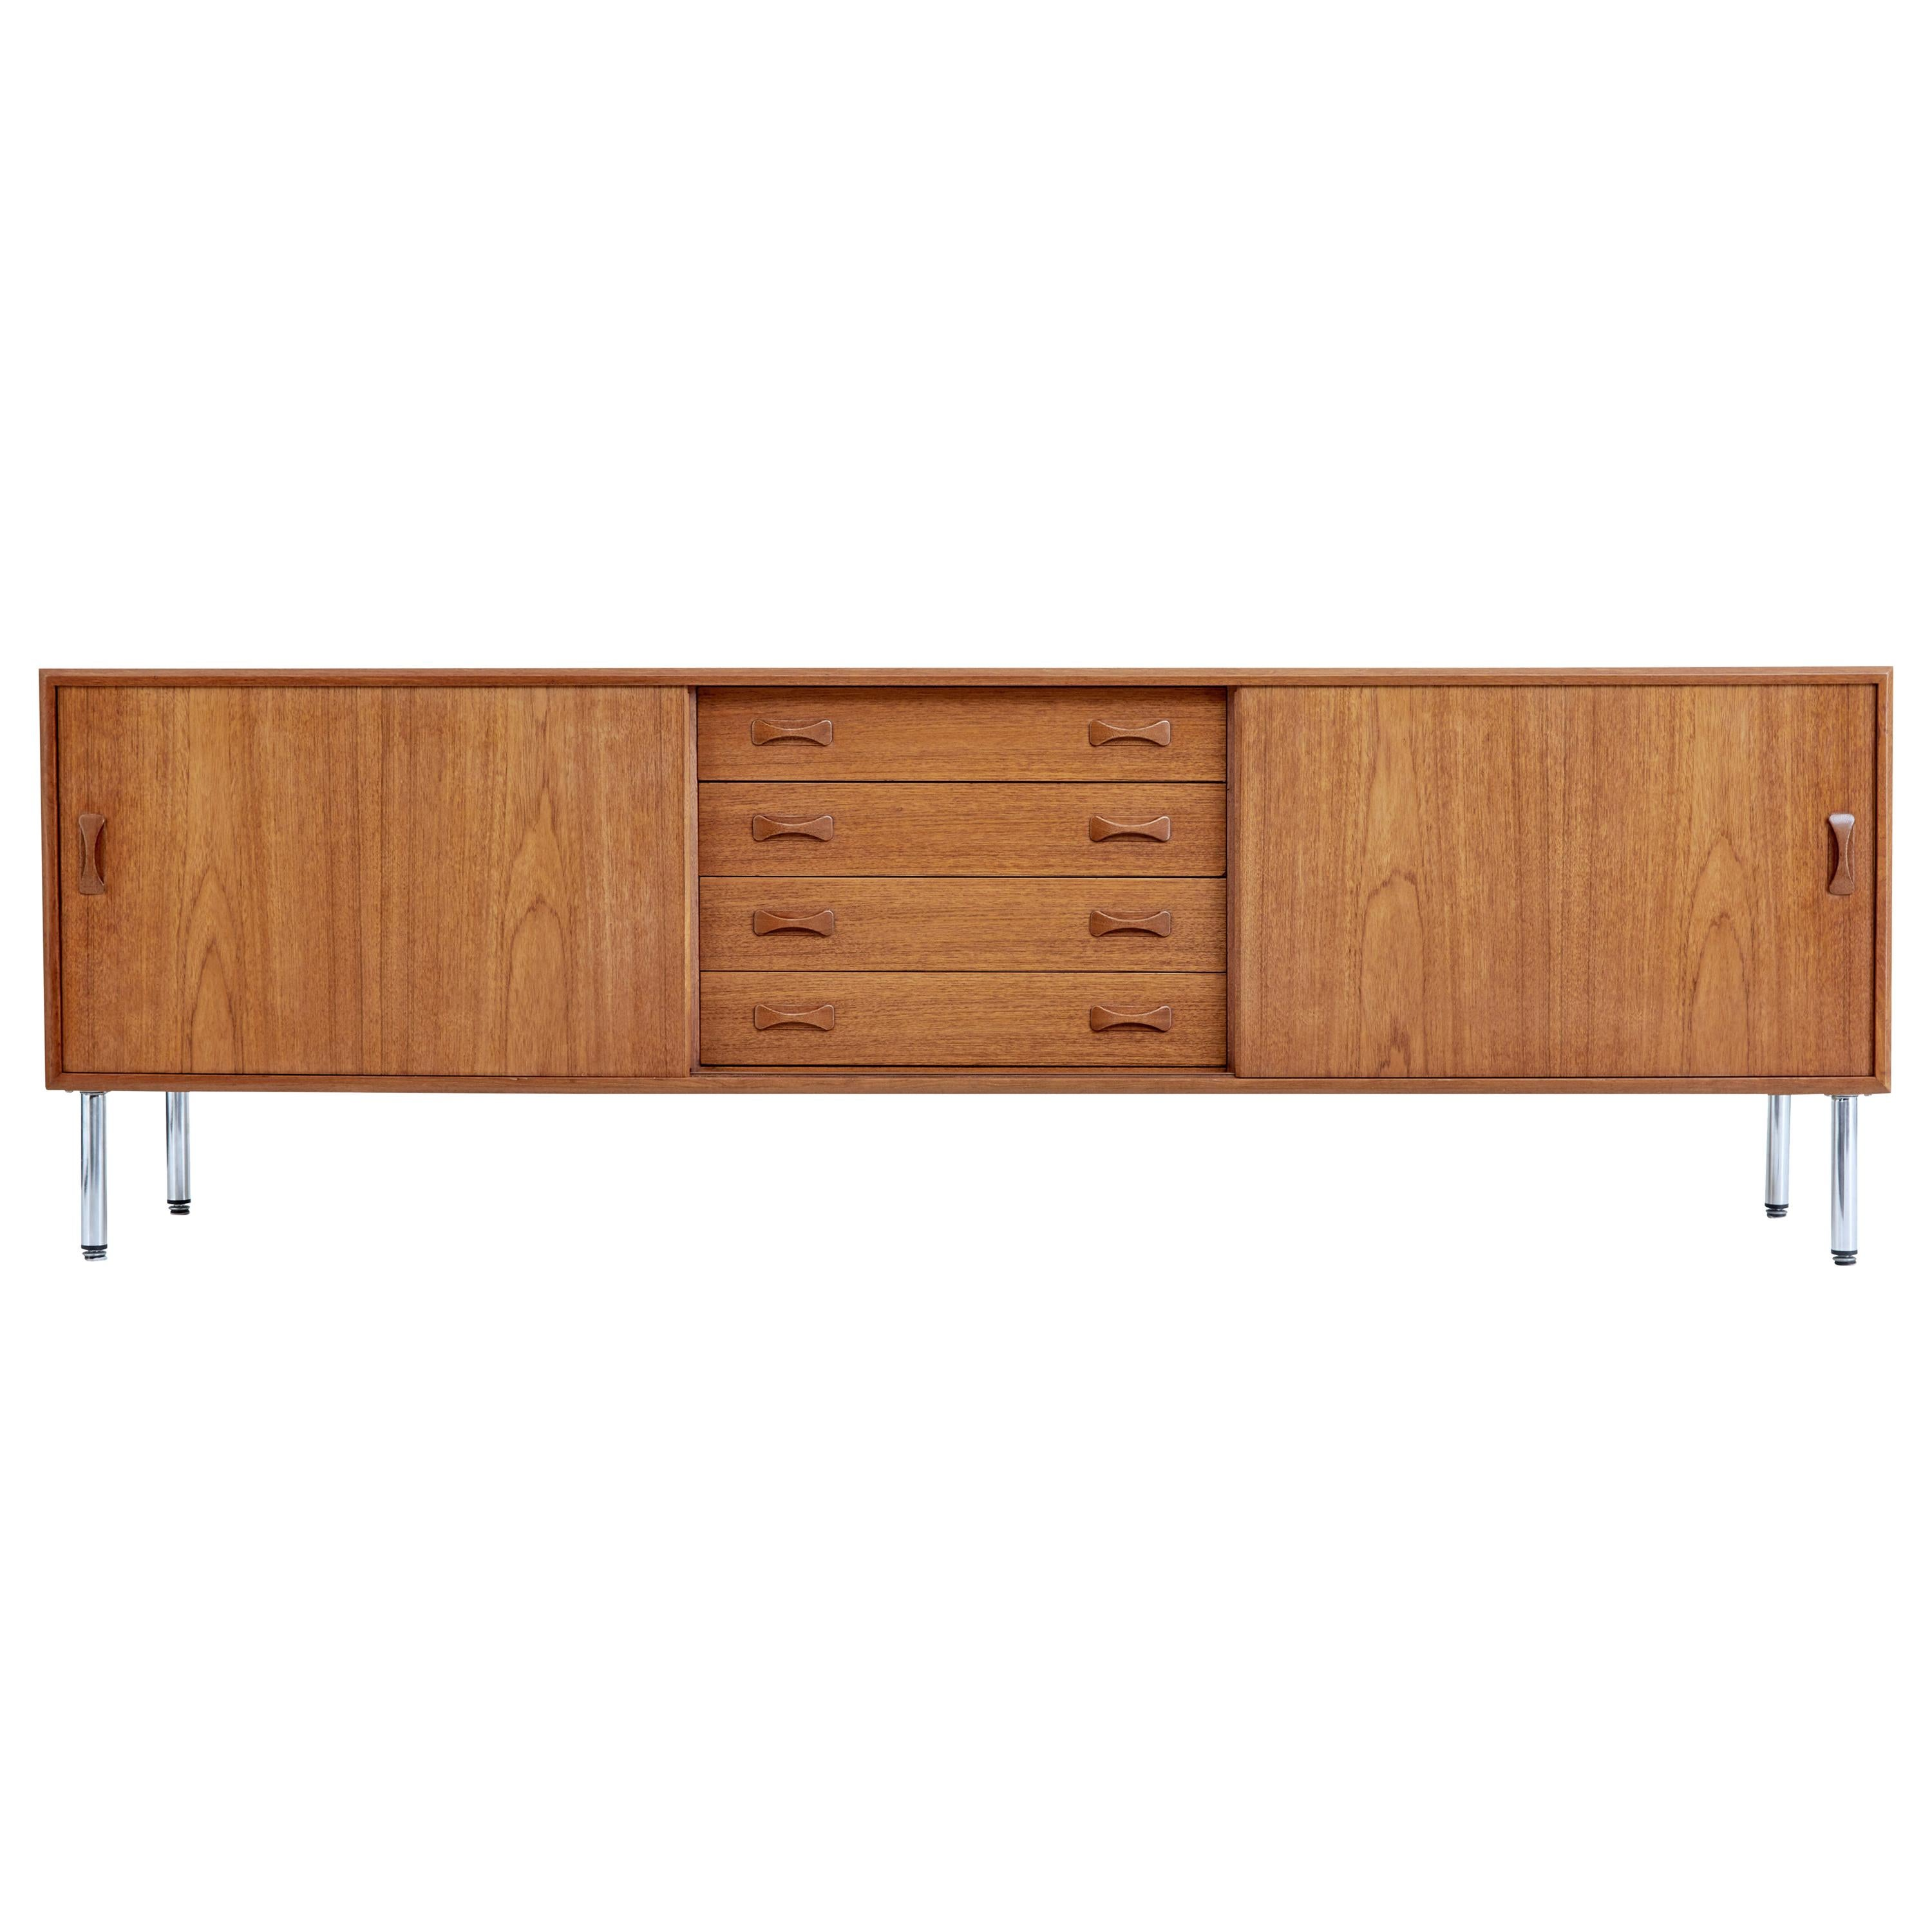 Mid-20th Century Danish Teak Sideboard by Clausen & Sons